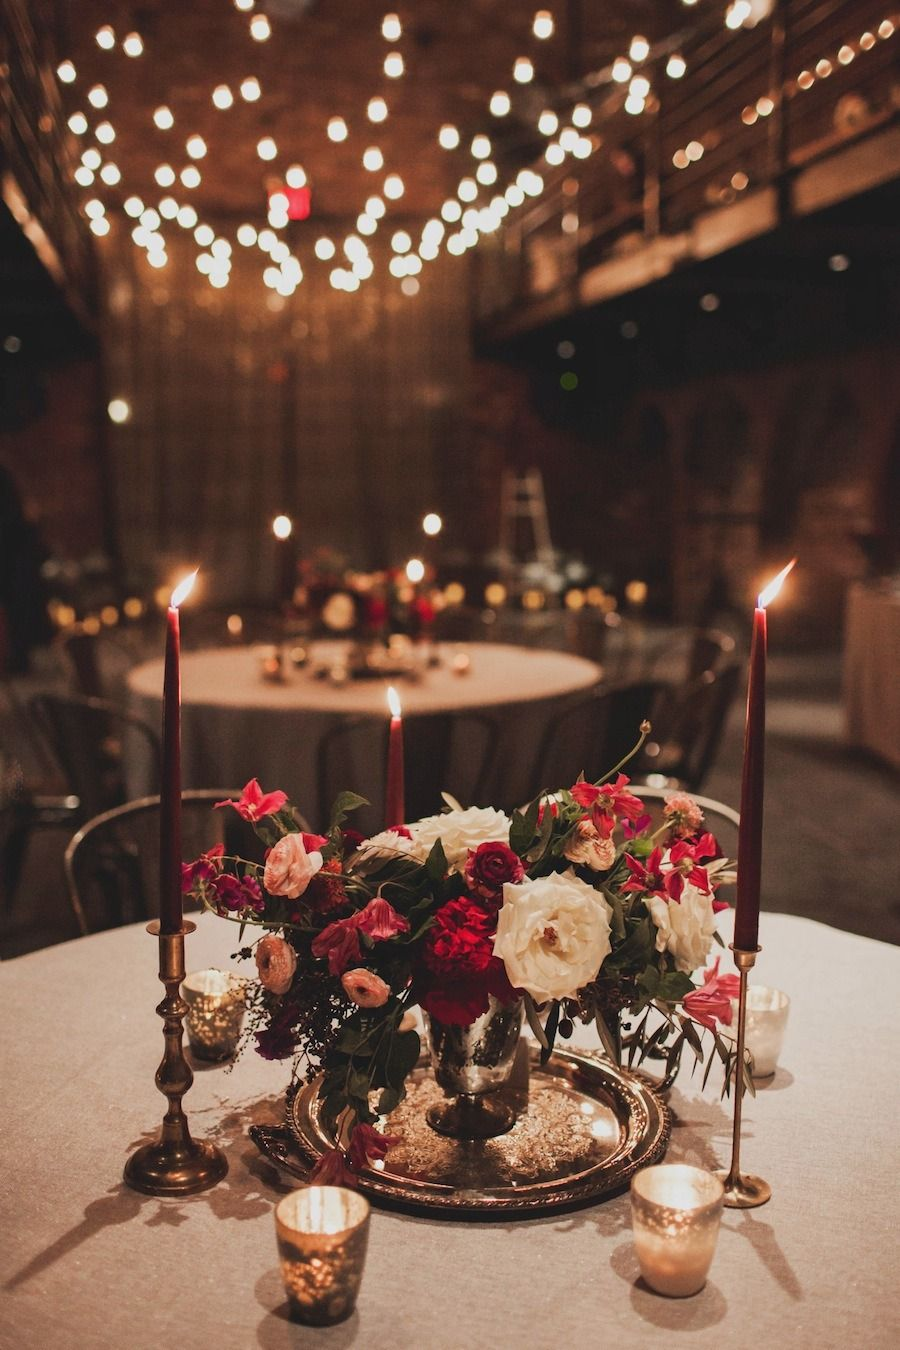 Omg The Burgundy Candles Are Gorgeous Winter Wedding Centerpieces Wedding Reception Centerpieces Burgundy And Blush Wedding